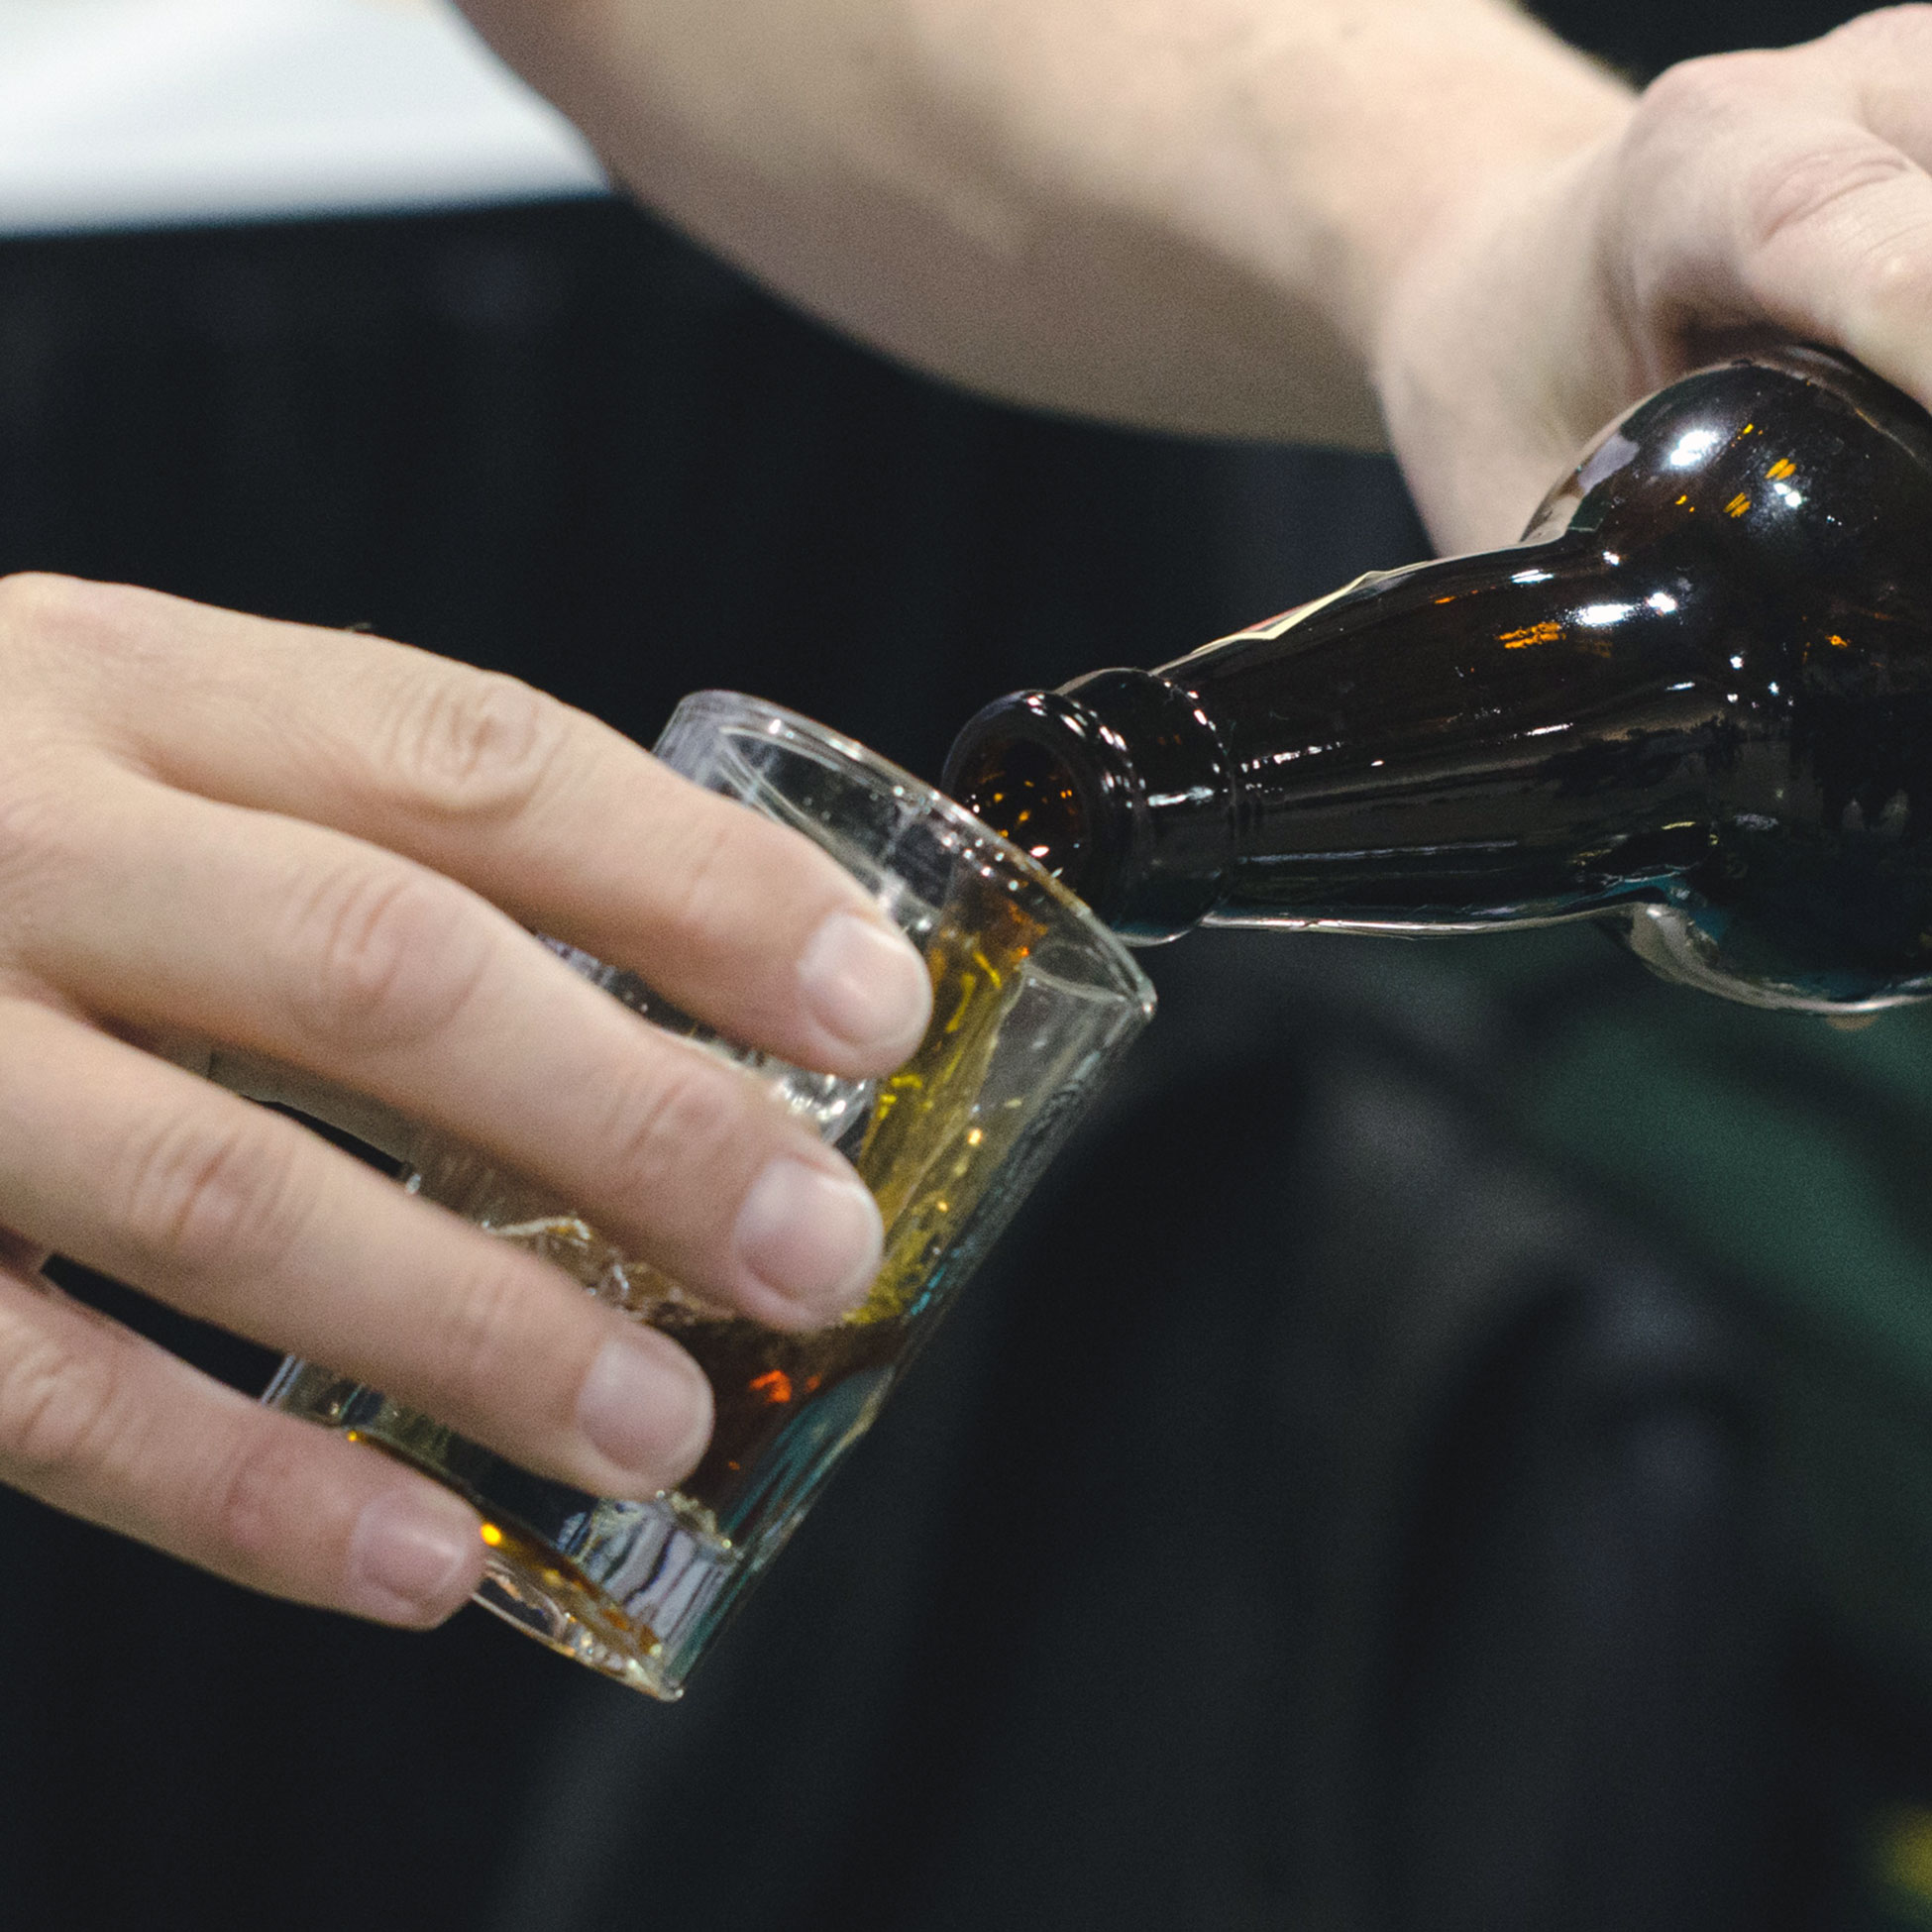 free-images-beer-bottle-pouring-creative-commons-cc-commercial-beer-event-sample